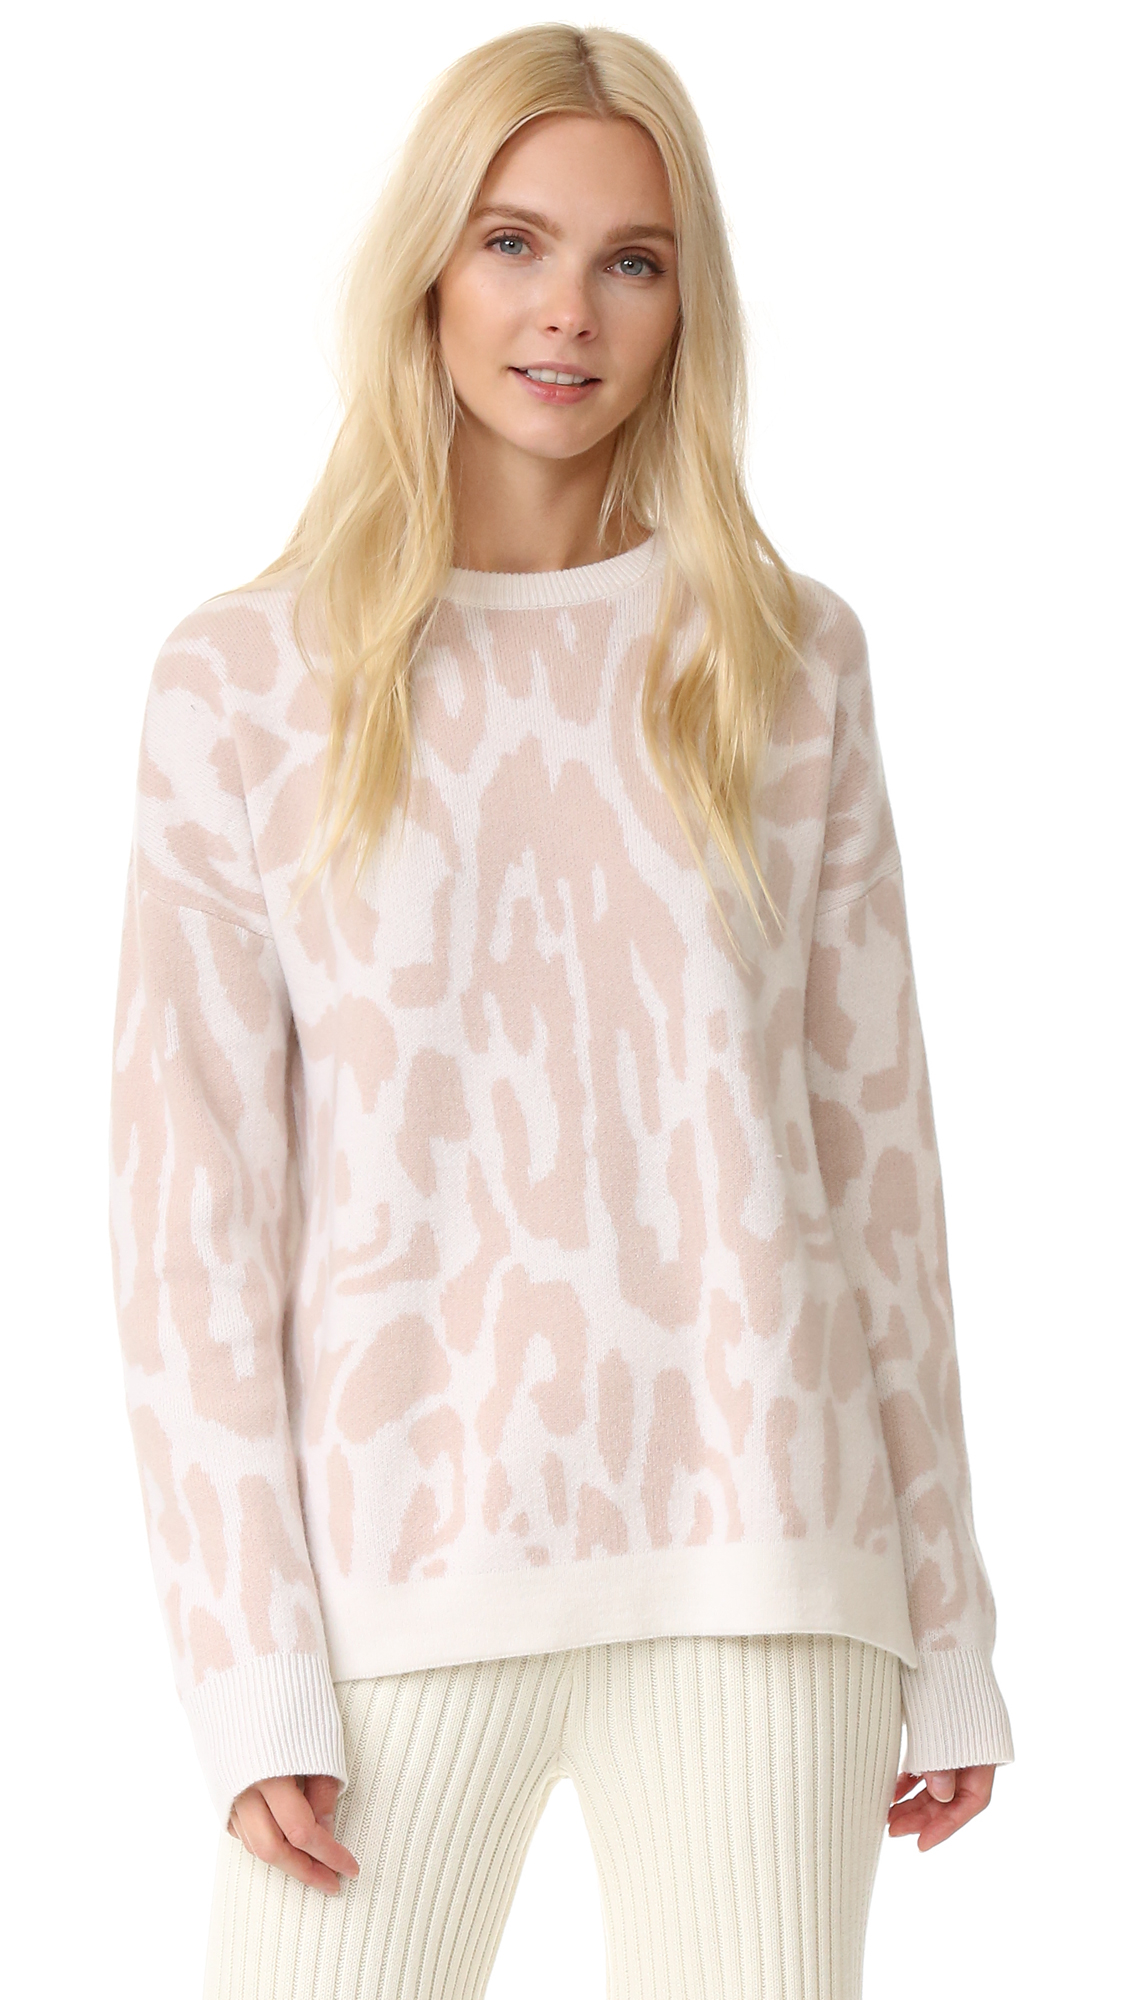 Pastel leopard spots accent this plush cashmere Baja East sweater. Dropped shoulder seams and a split hem relax the fit. Crew neckline. Long sleeves. Fabric: Soft double knit. 100% cashmere. Hand wash or dry clean. Made in